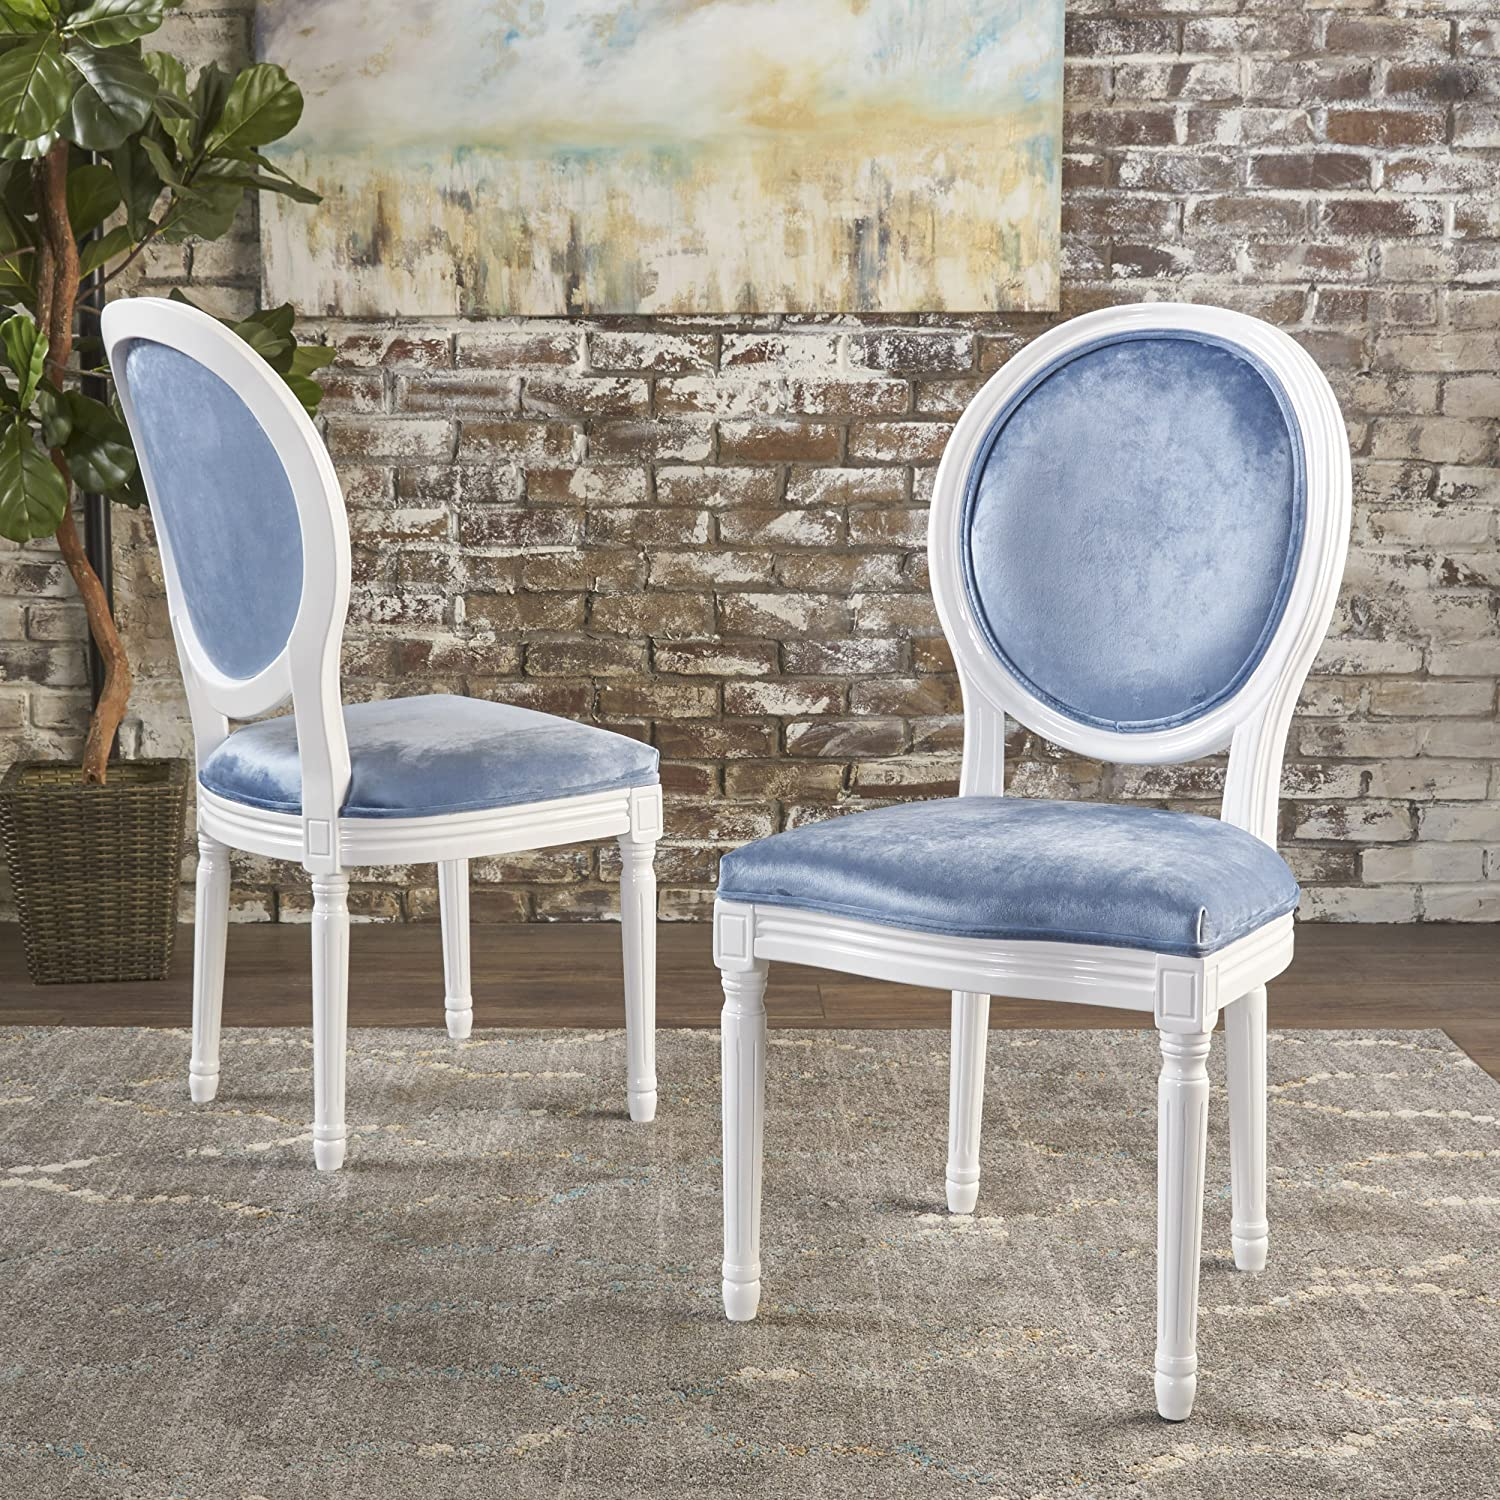 Christopher Knight Home Camille Traditional New Velvet Dining Chairs Set Of 2 , Icy Blue Gloss White